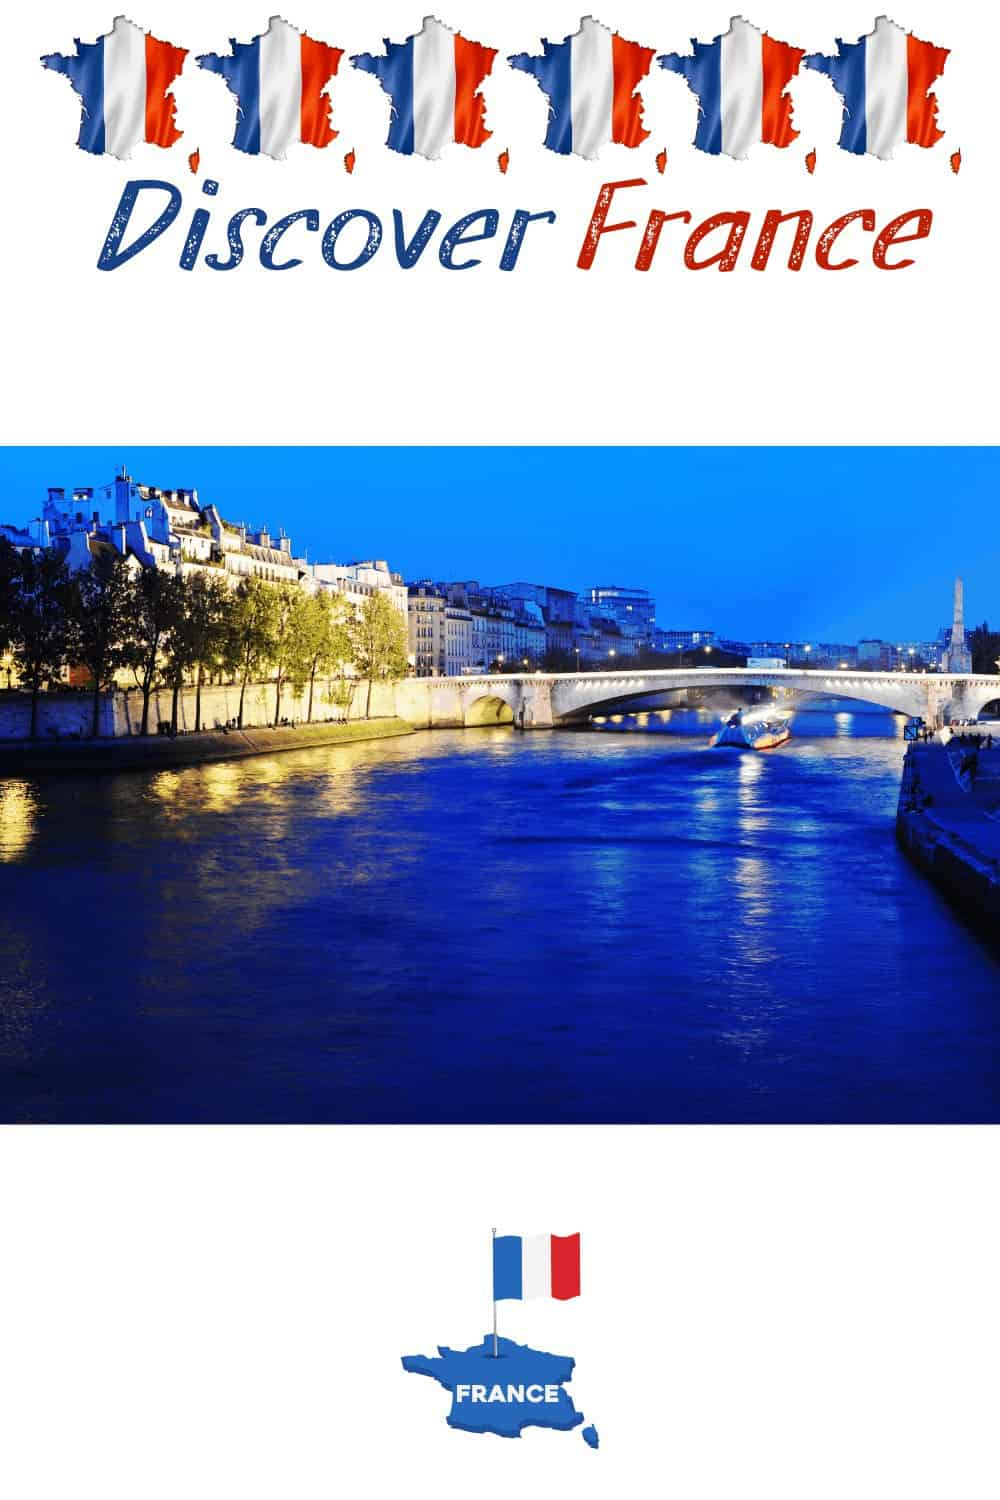 Discover France River